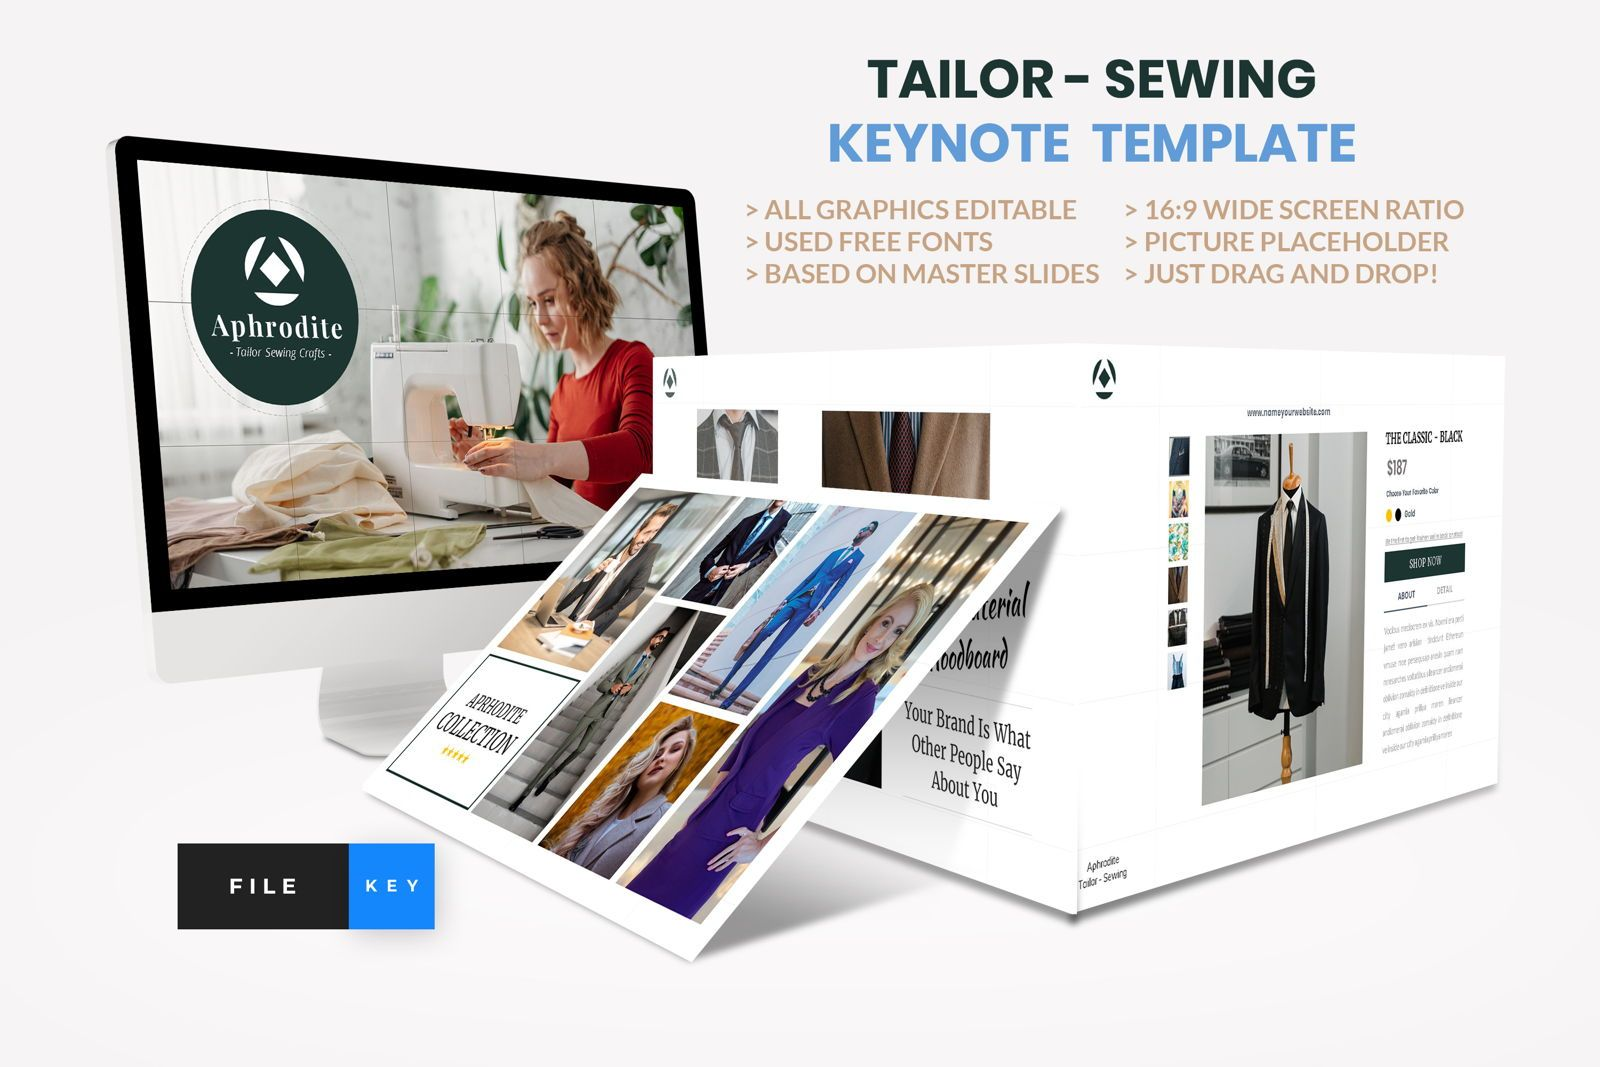 Tailor - Sewing Fashion Craft Keynote Template, 08633, Business Models — PoweredTemplate.com